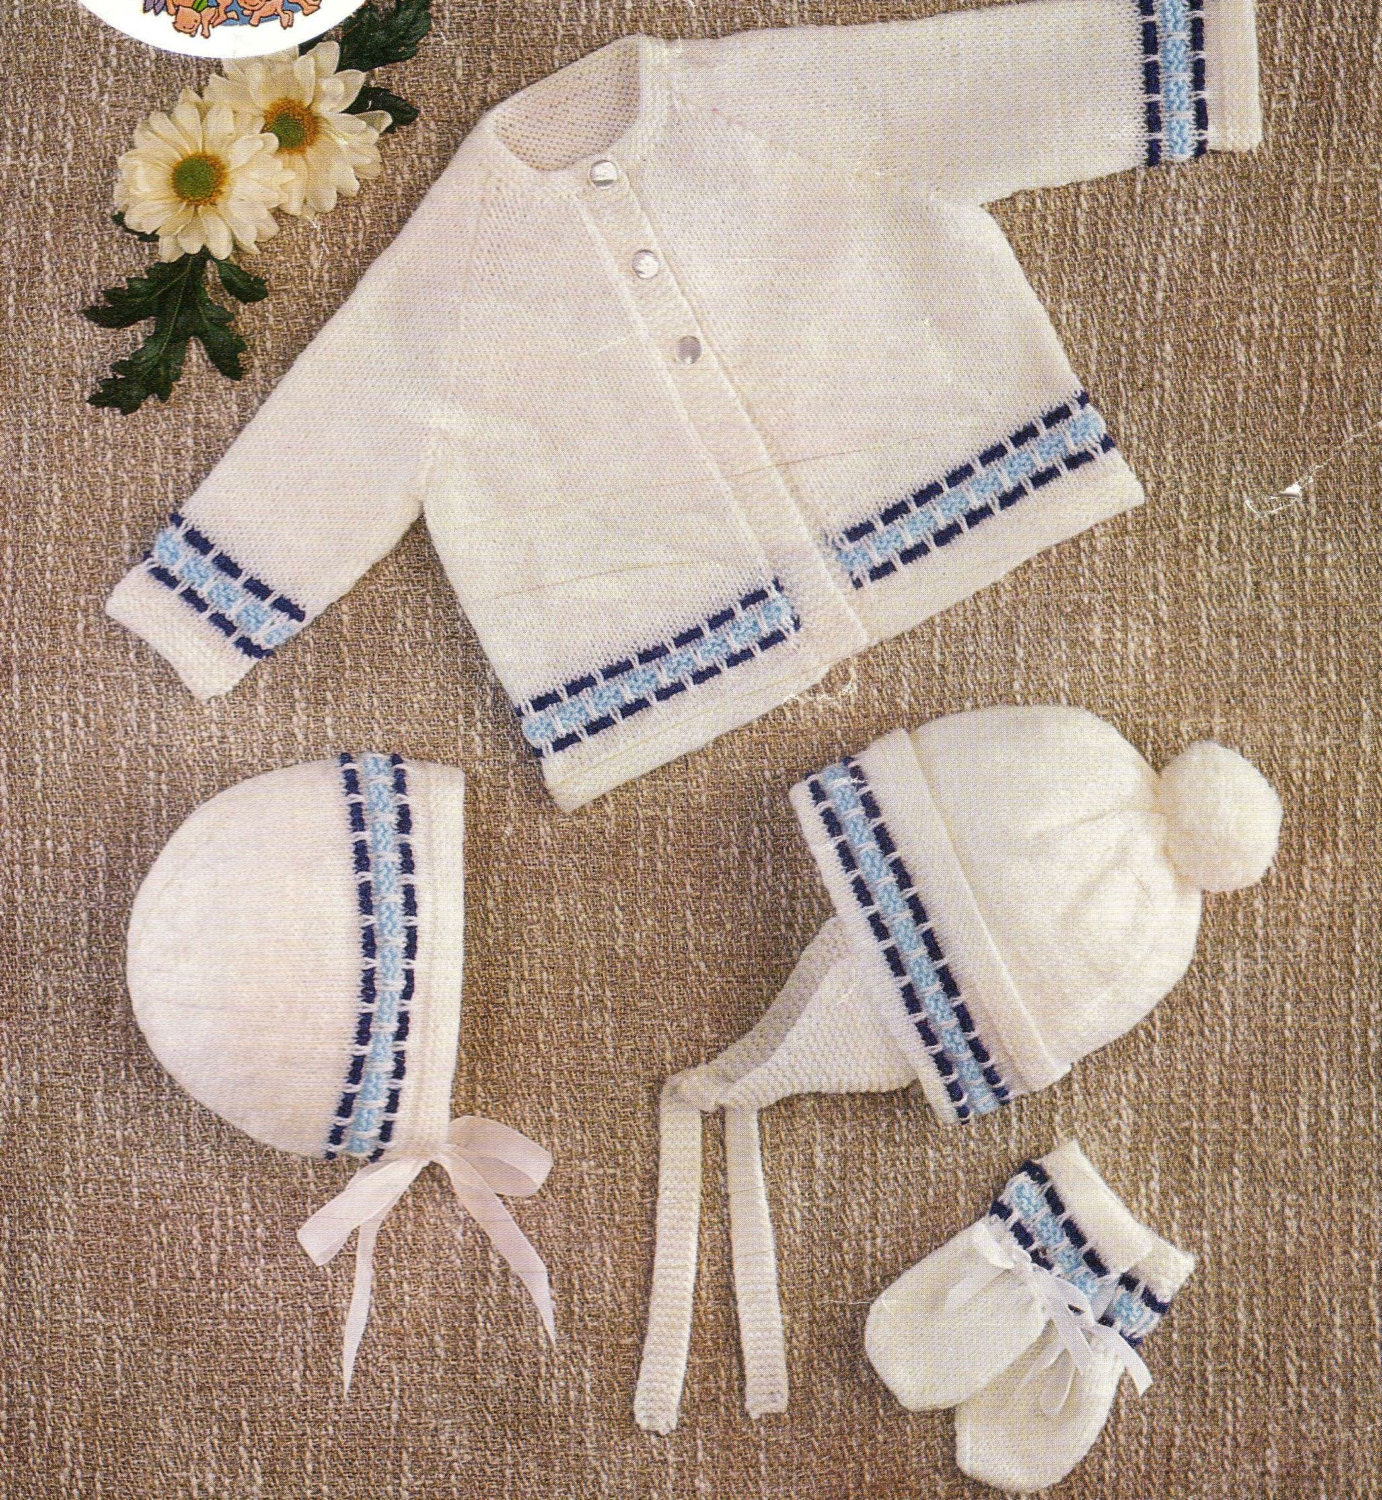 Knitting Pattern For Vintage Baby Bonnet : Knit Baby Jacket Bonnet Helmet Mitts Vintage Knitting Pattern